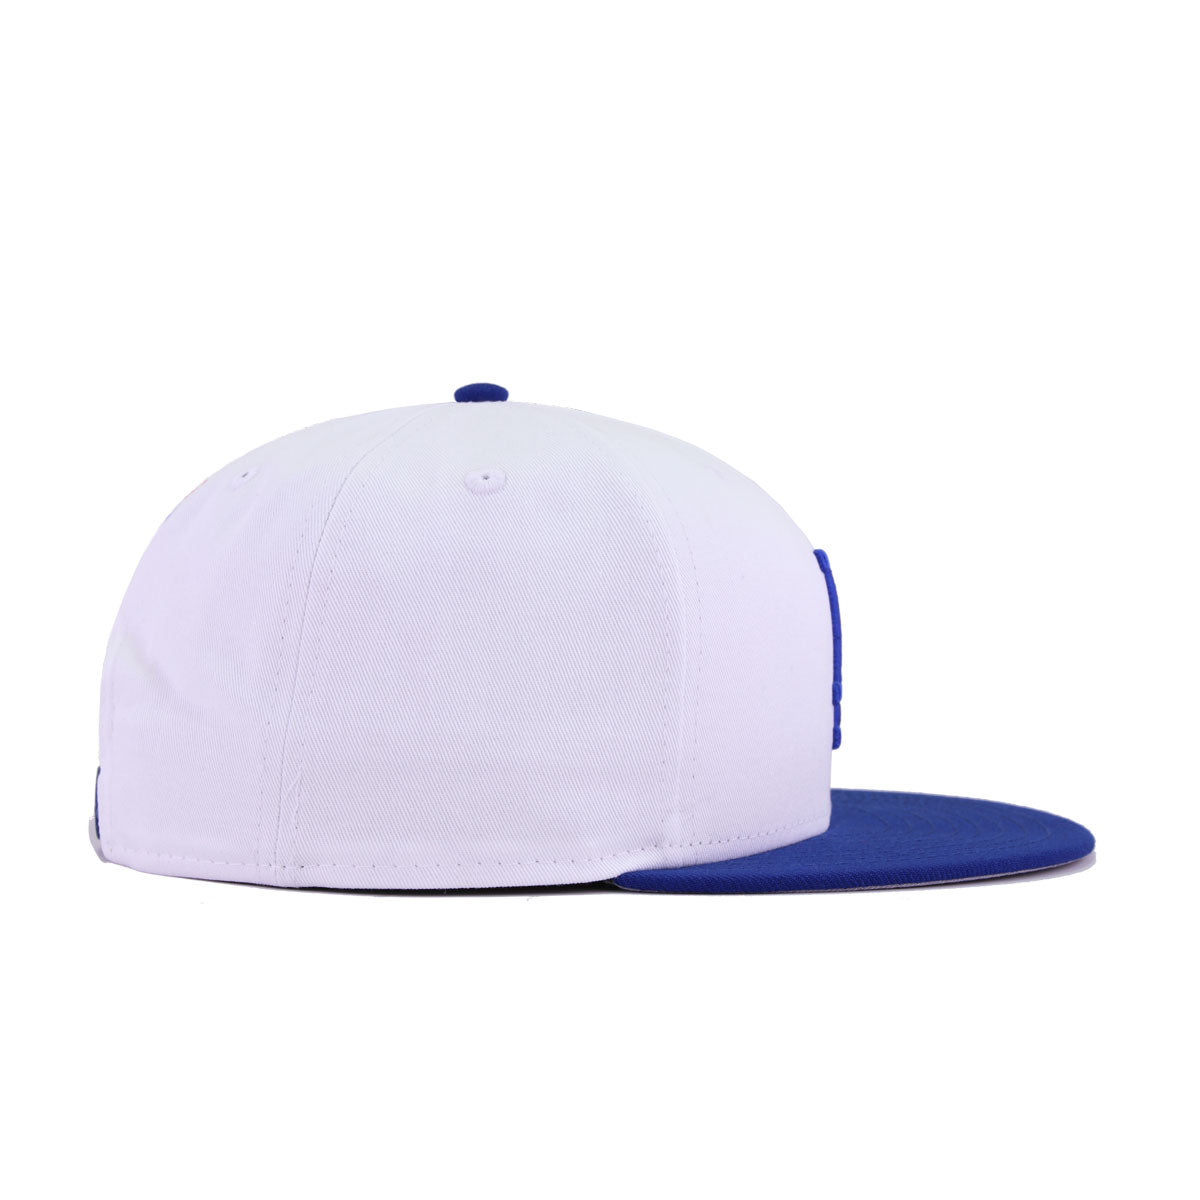 Los Angeles Dodgers White Twill Light Royal Blue New Era 9Fifty Snapback